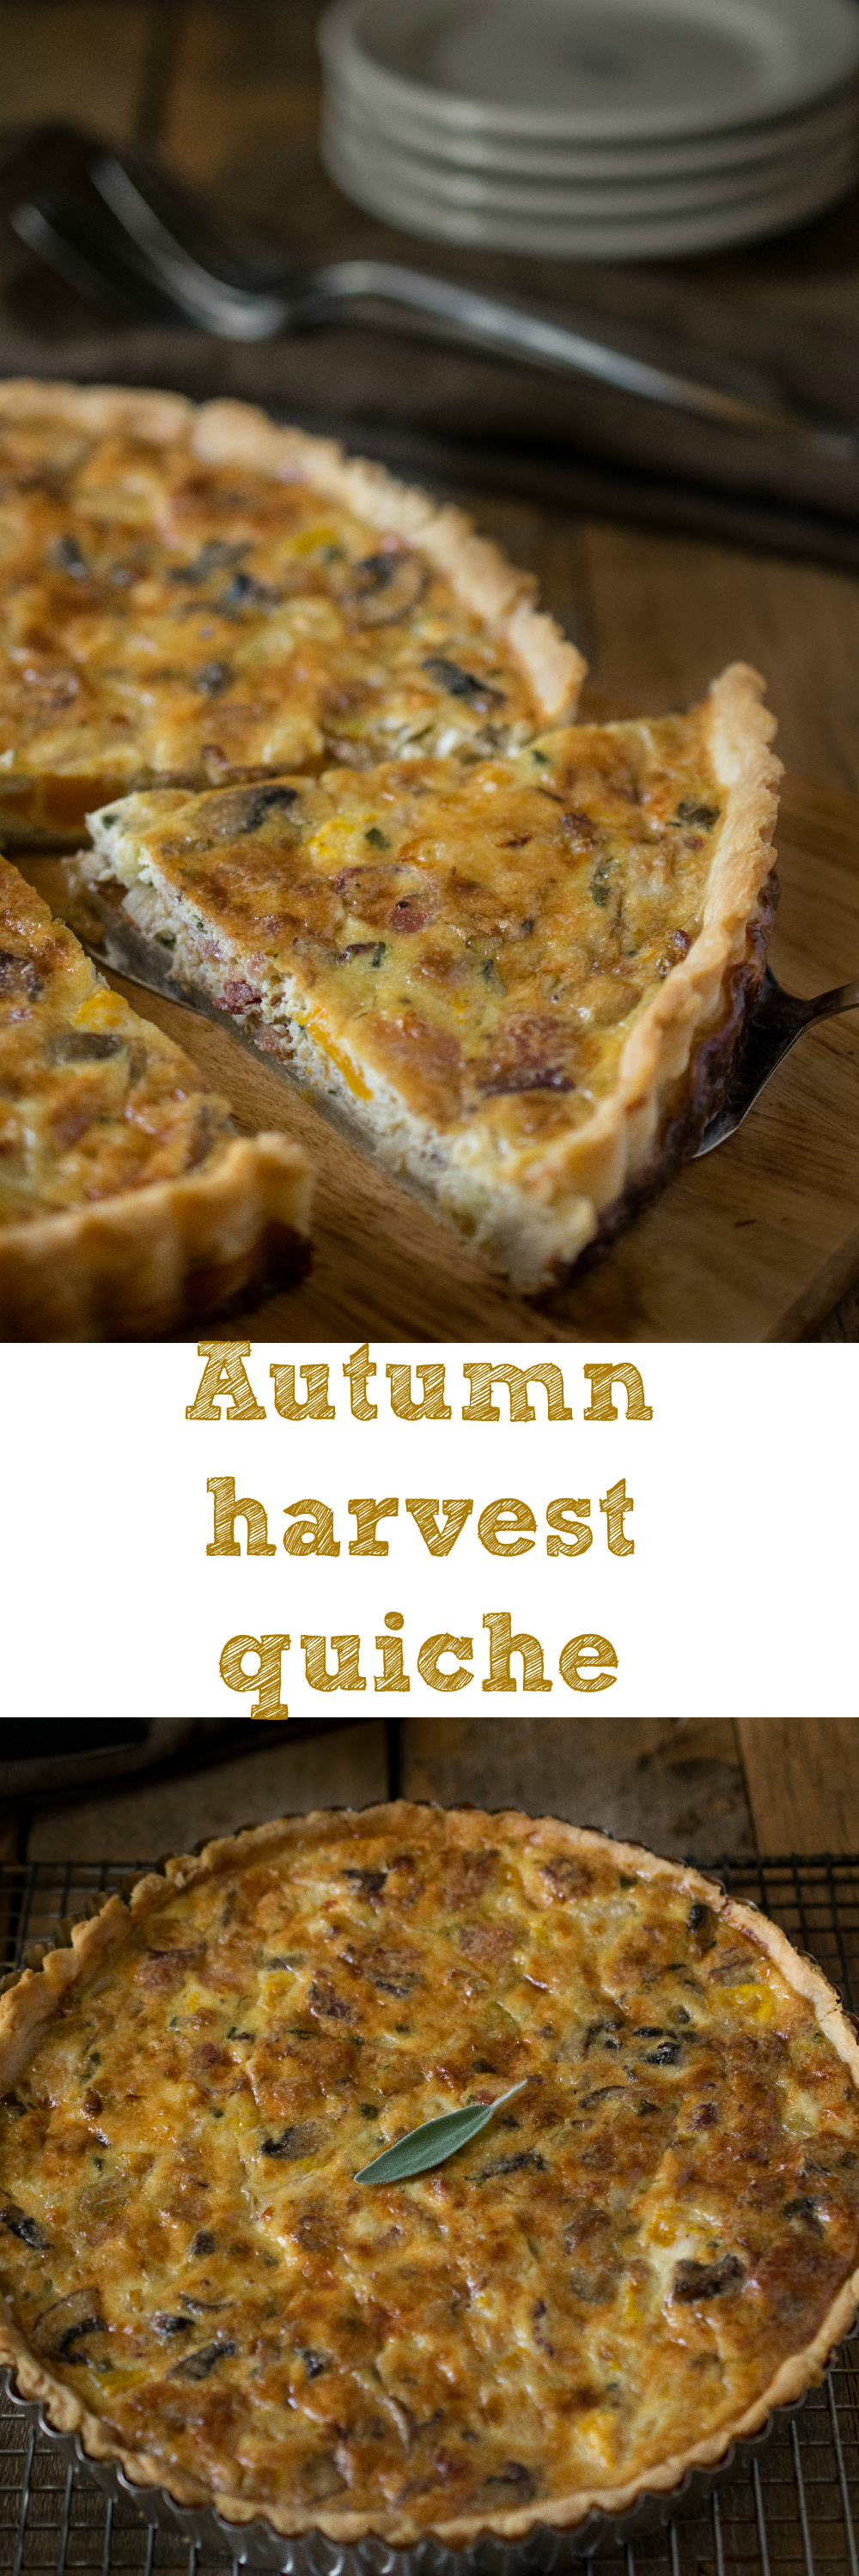 Autumn harvest quiche - Buttery, flaky crust with a mushroom, bacon, butternut squash, leek and sage filling.